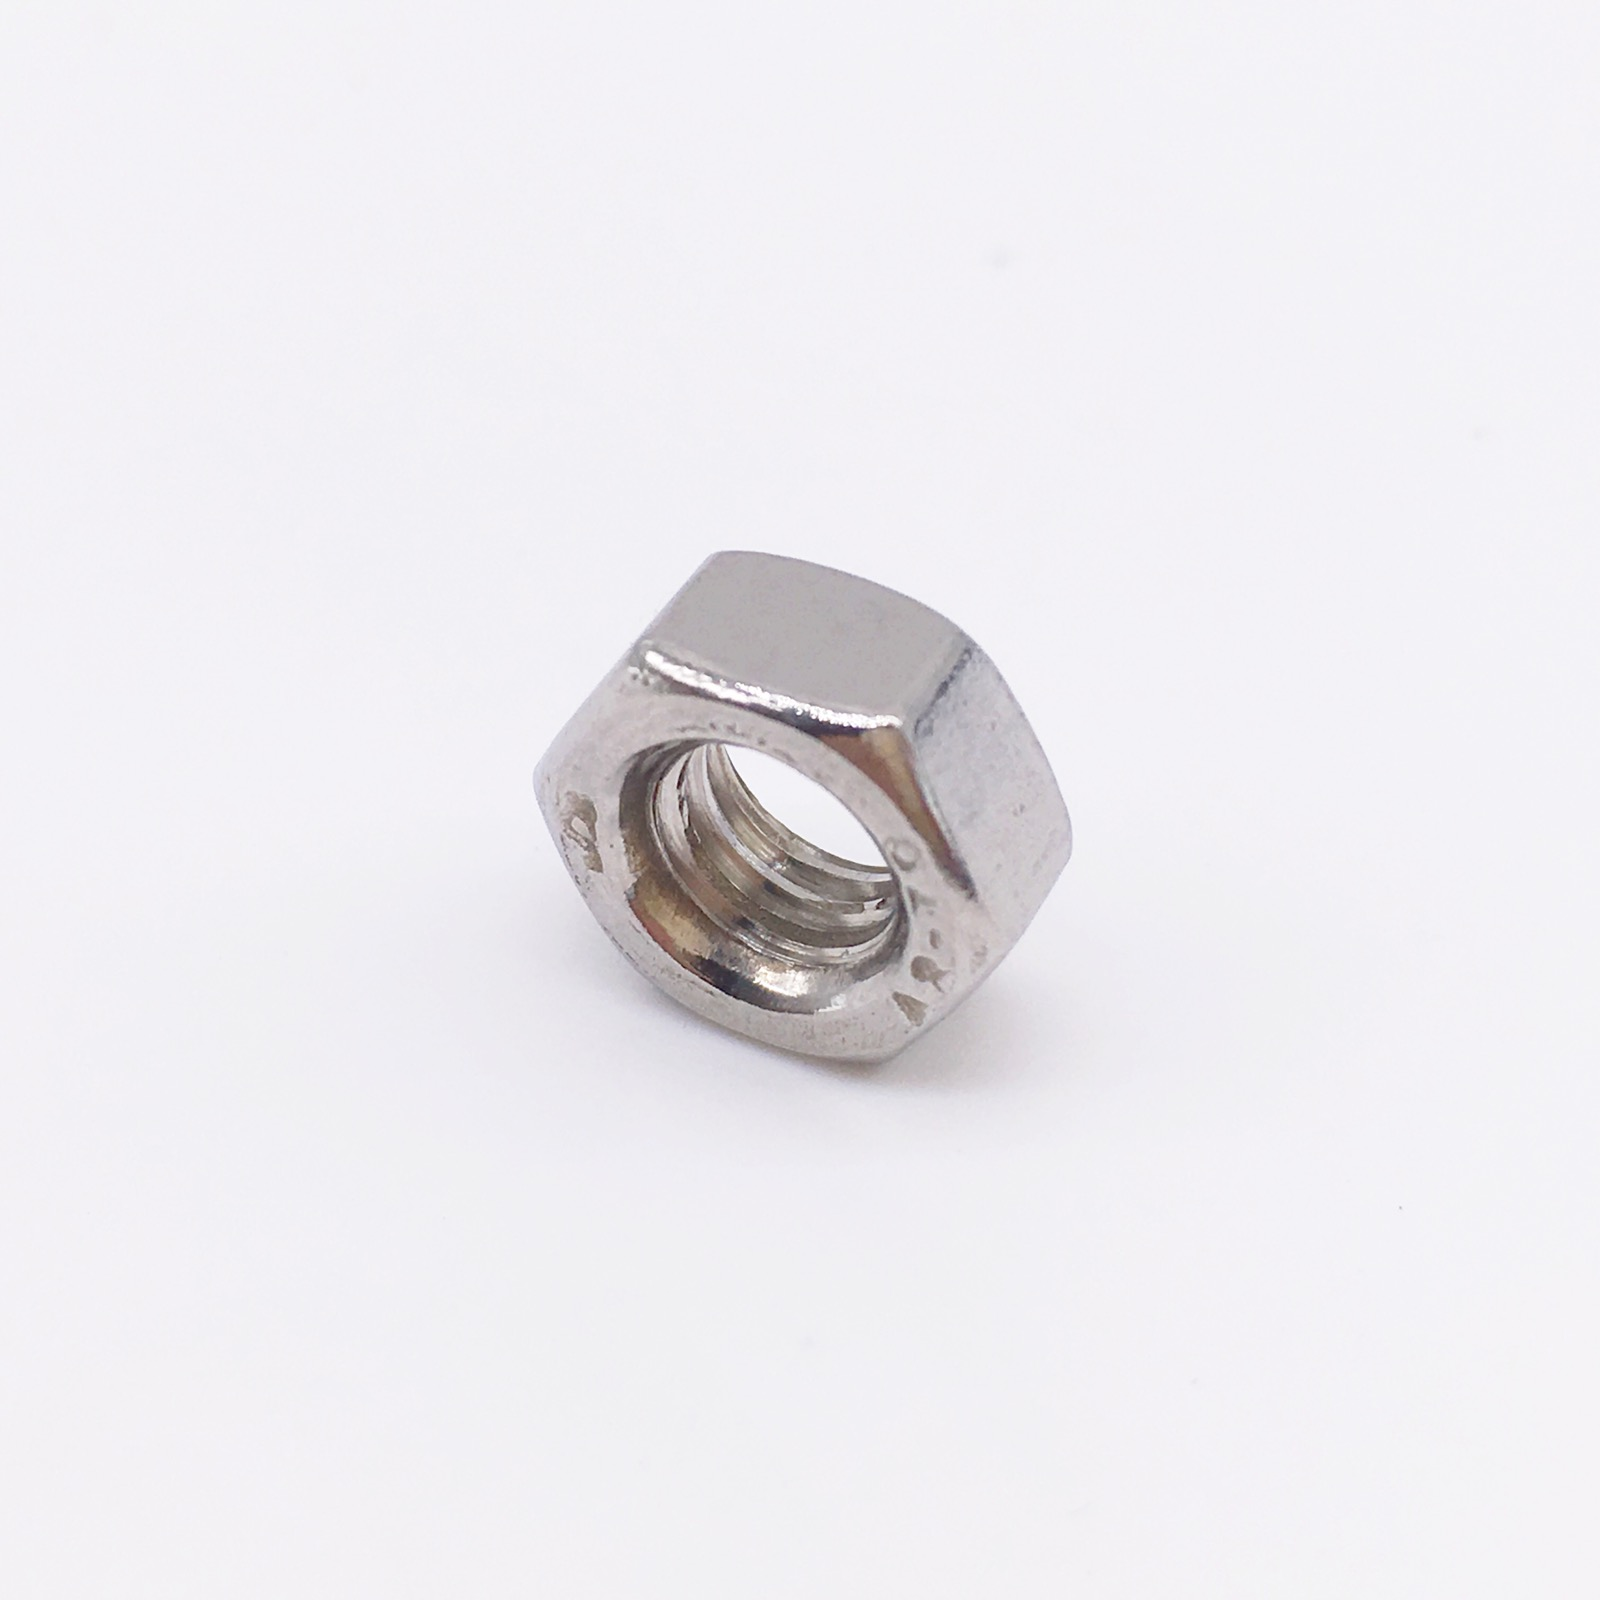 M3 M6 M8 M10 Hex Nuts Left Threads Stainless Steel Metric M4 M5 press in captive stud 303 stainless steel metric m5 0 8 threads 25mm overall length pack of 100